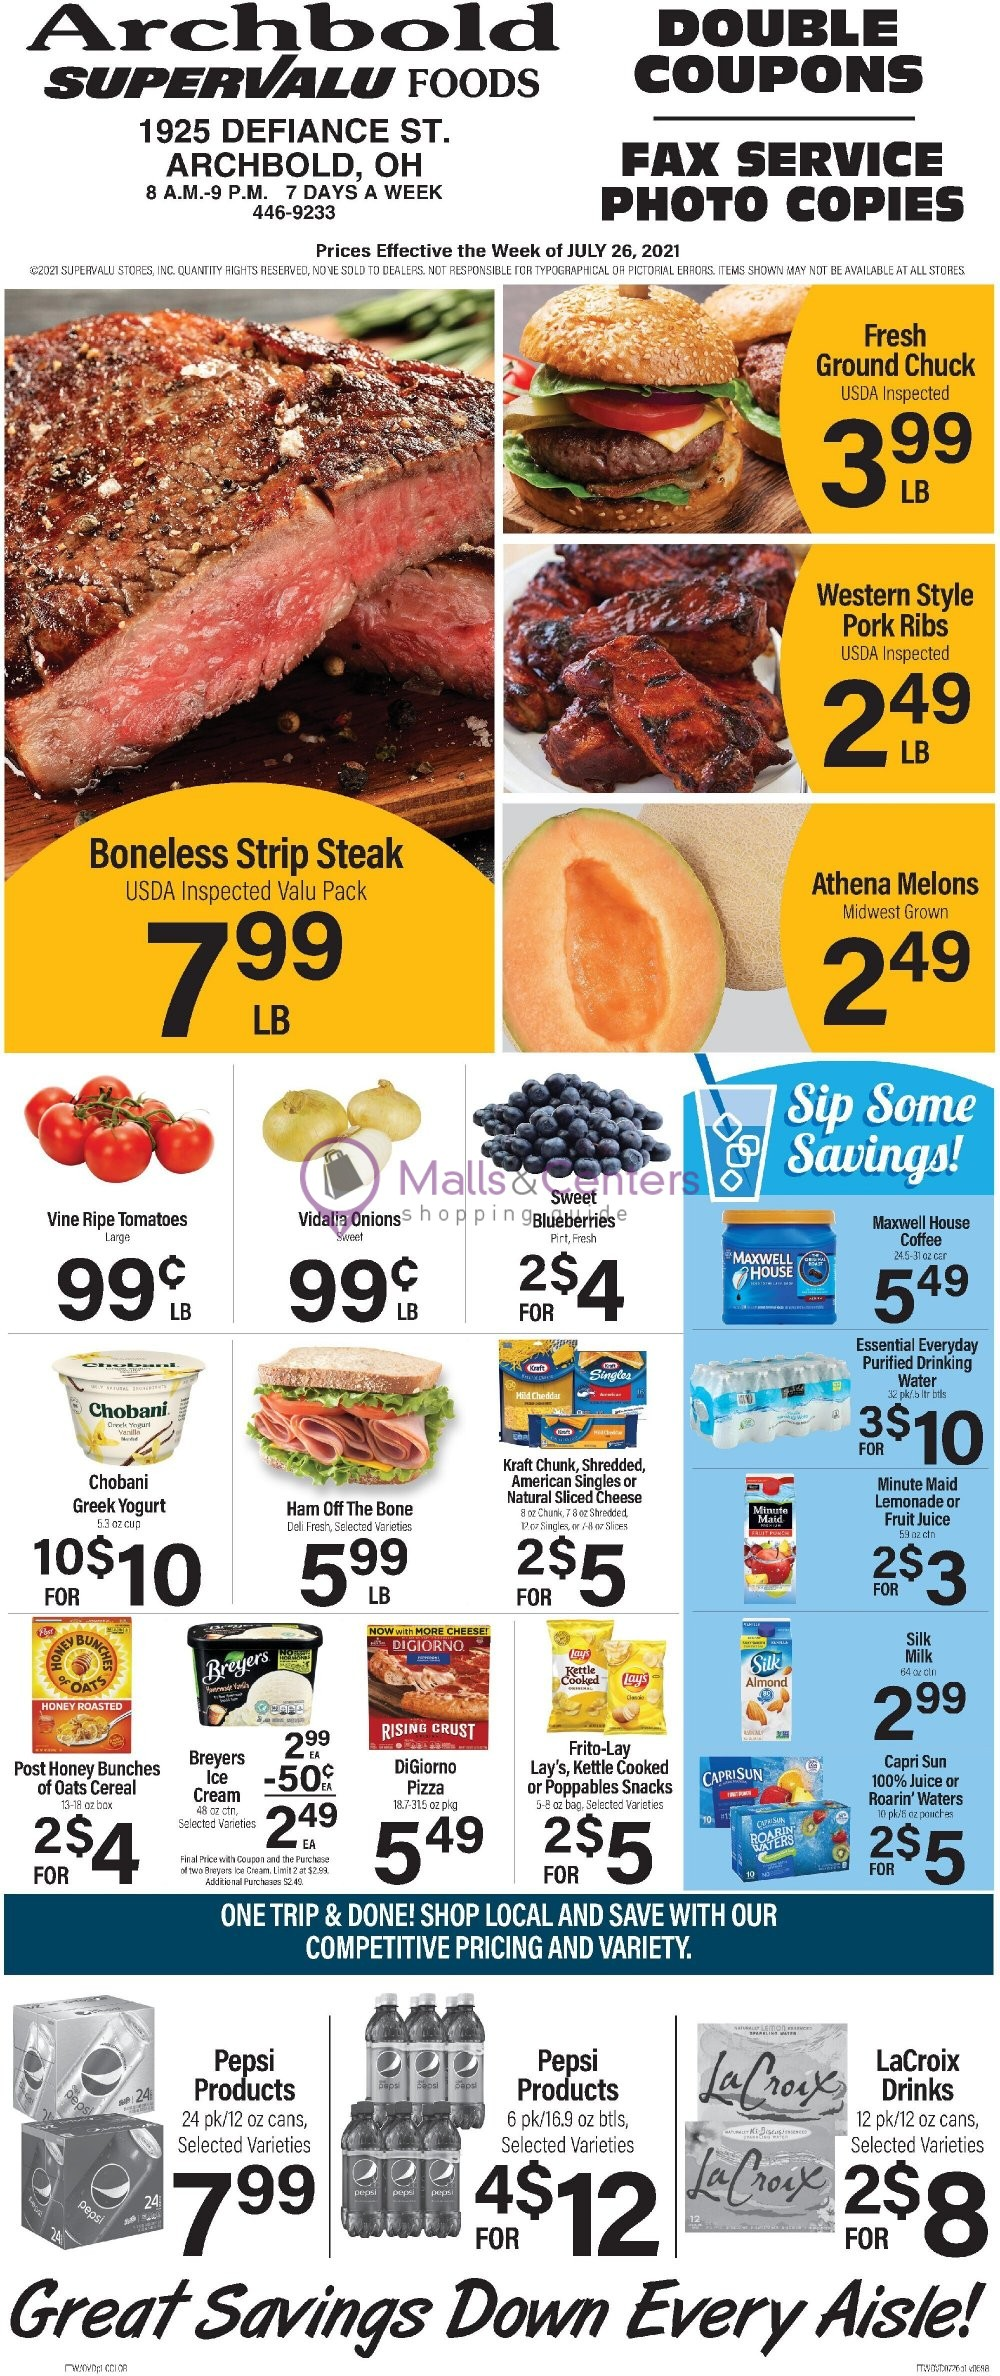 weekly ads Supervalu Food Stores - page 1 - mallscenters.com